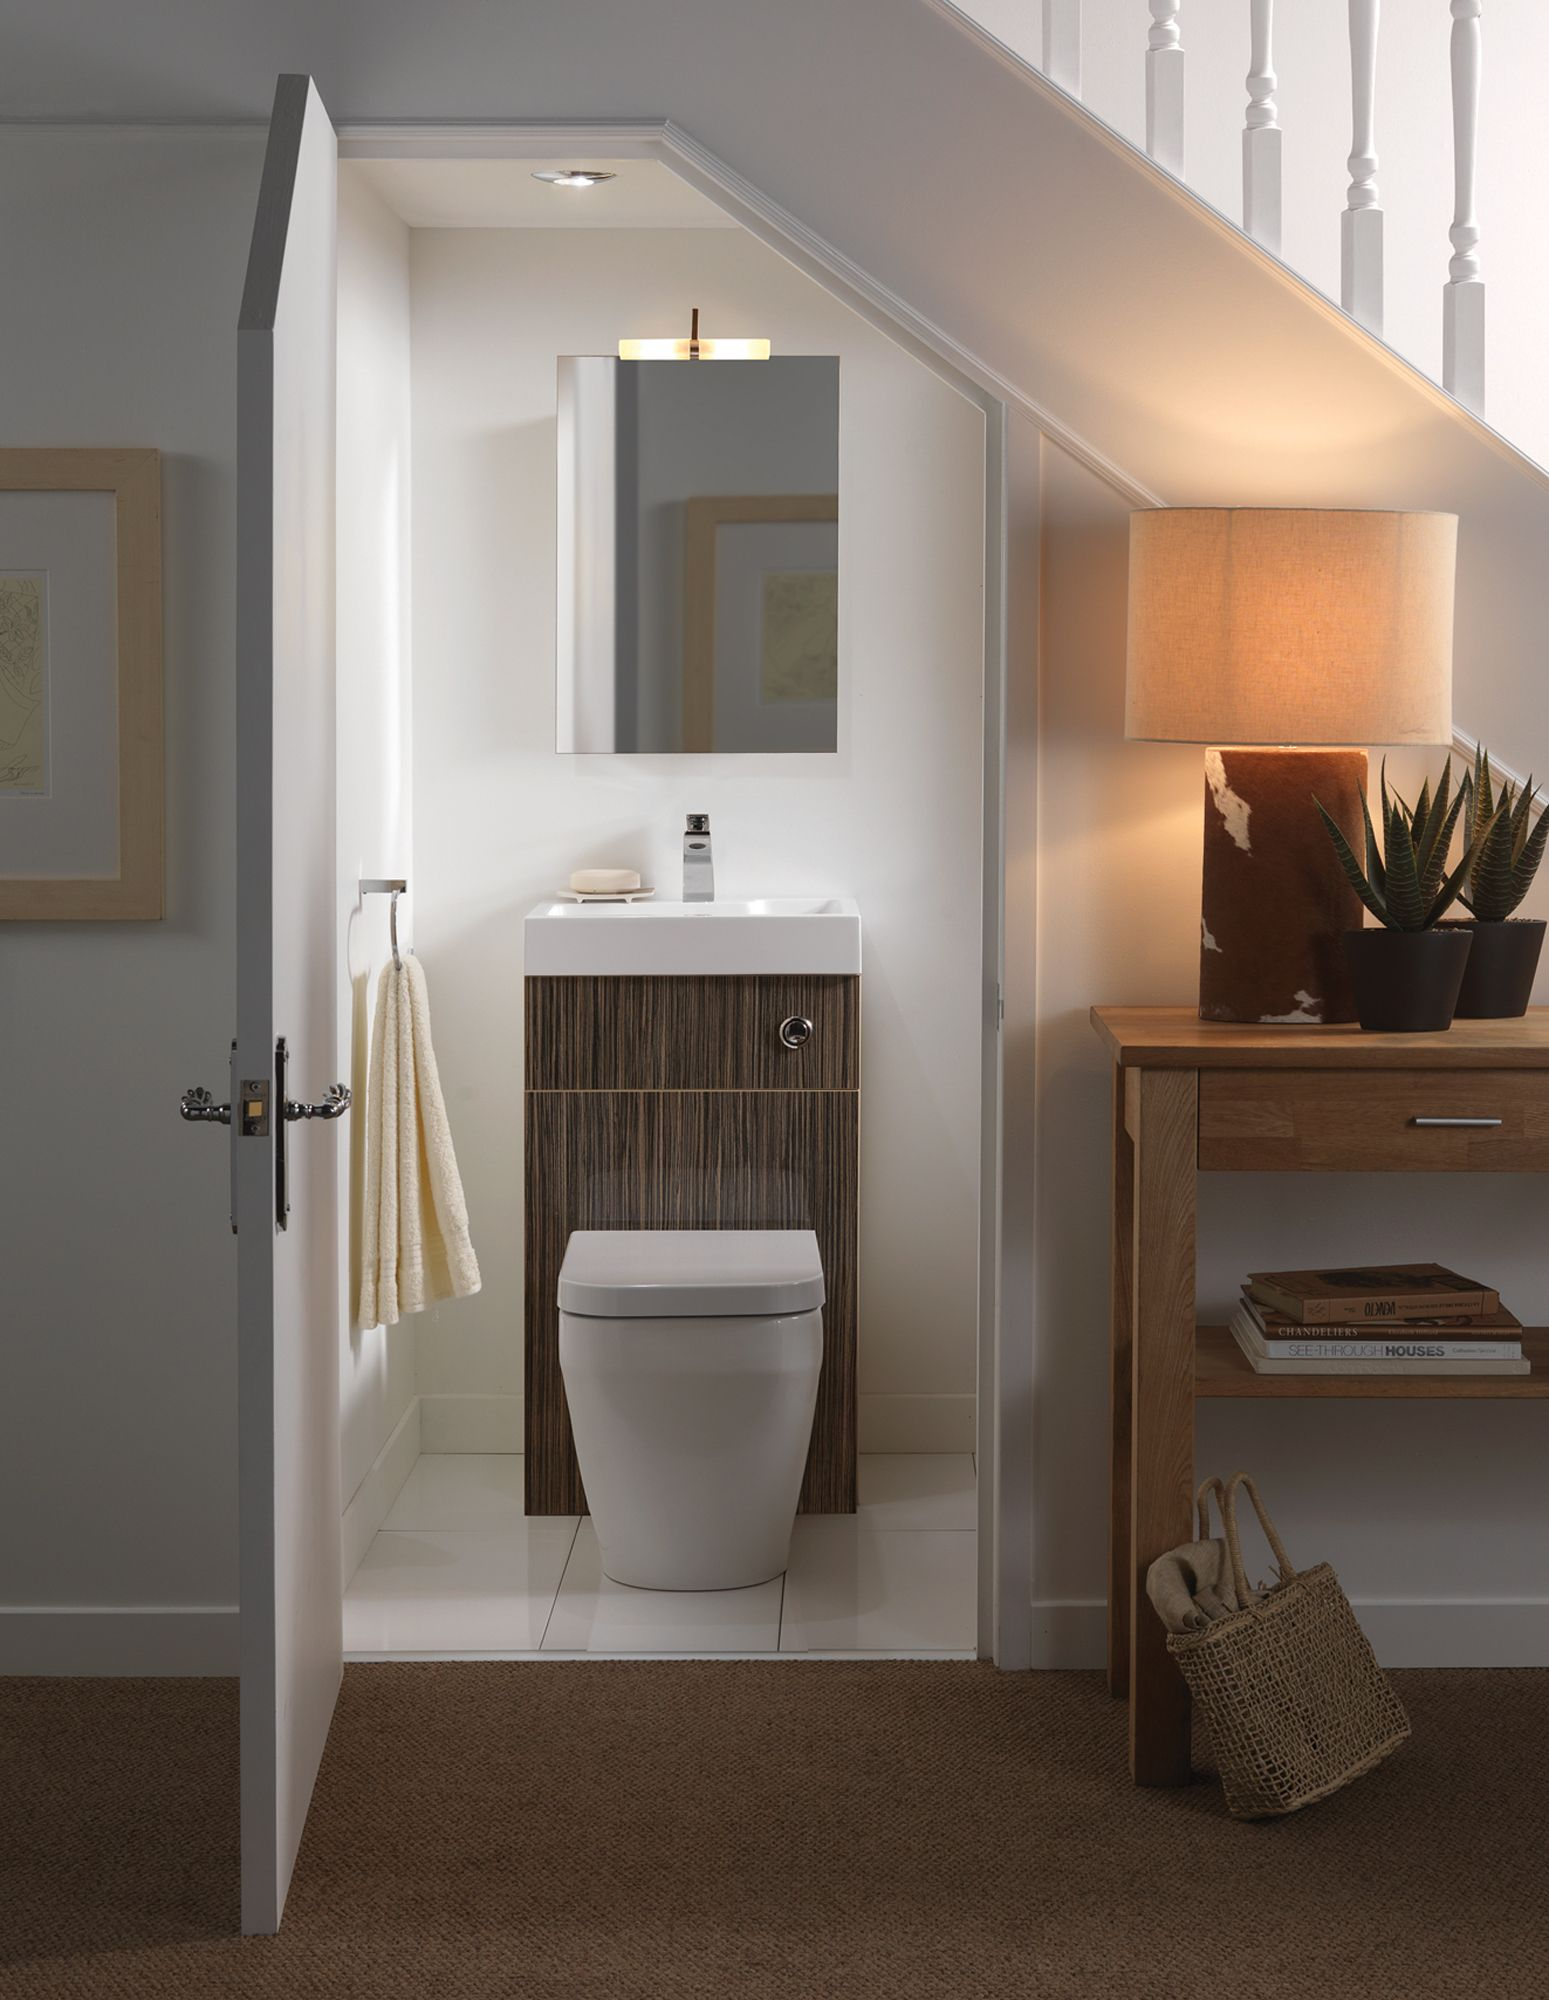 Baño   Aseo   Escalera   Aseo Bajo Escalera   Small Bath Under The Stairs    Simple Efficient Design